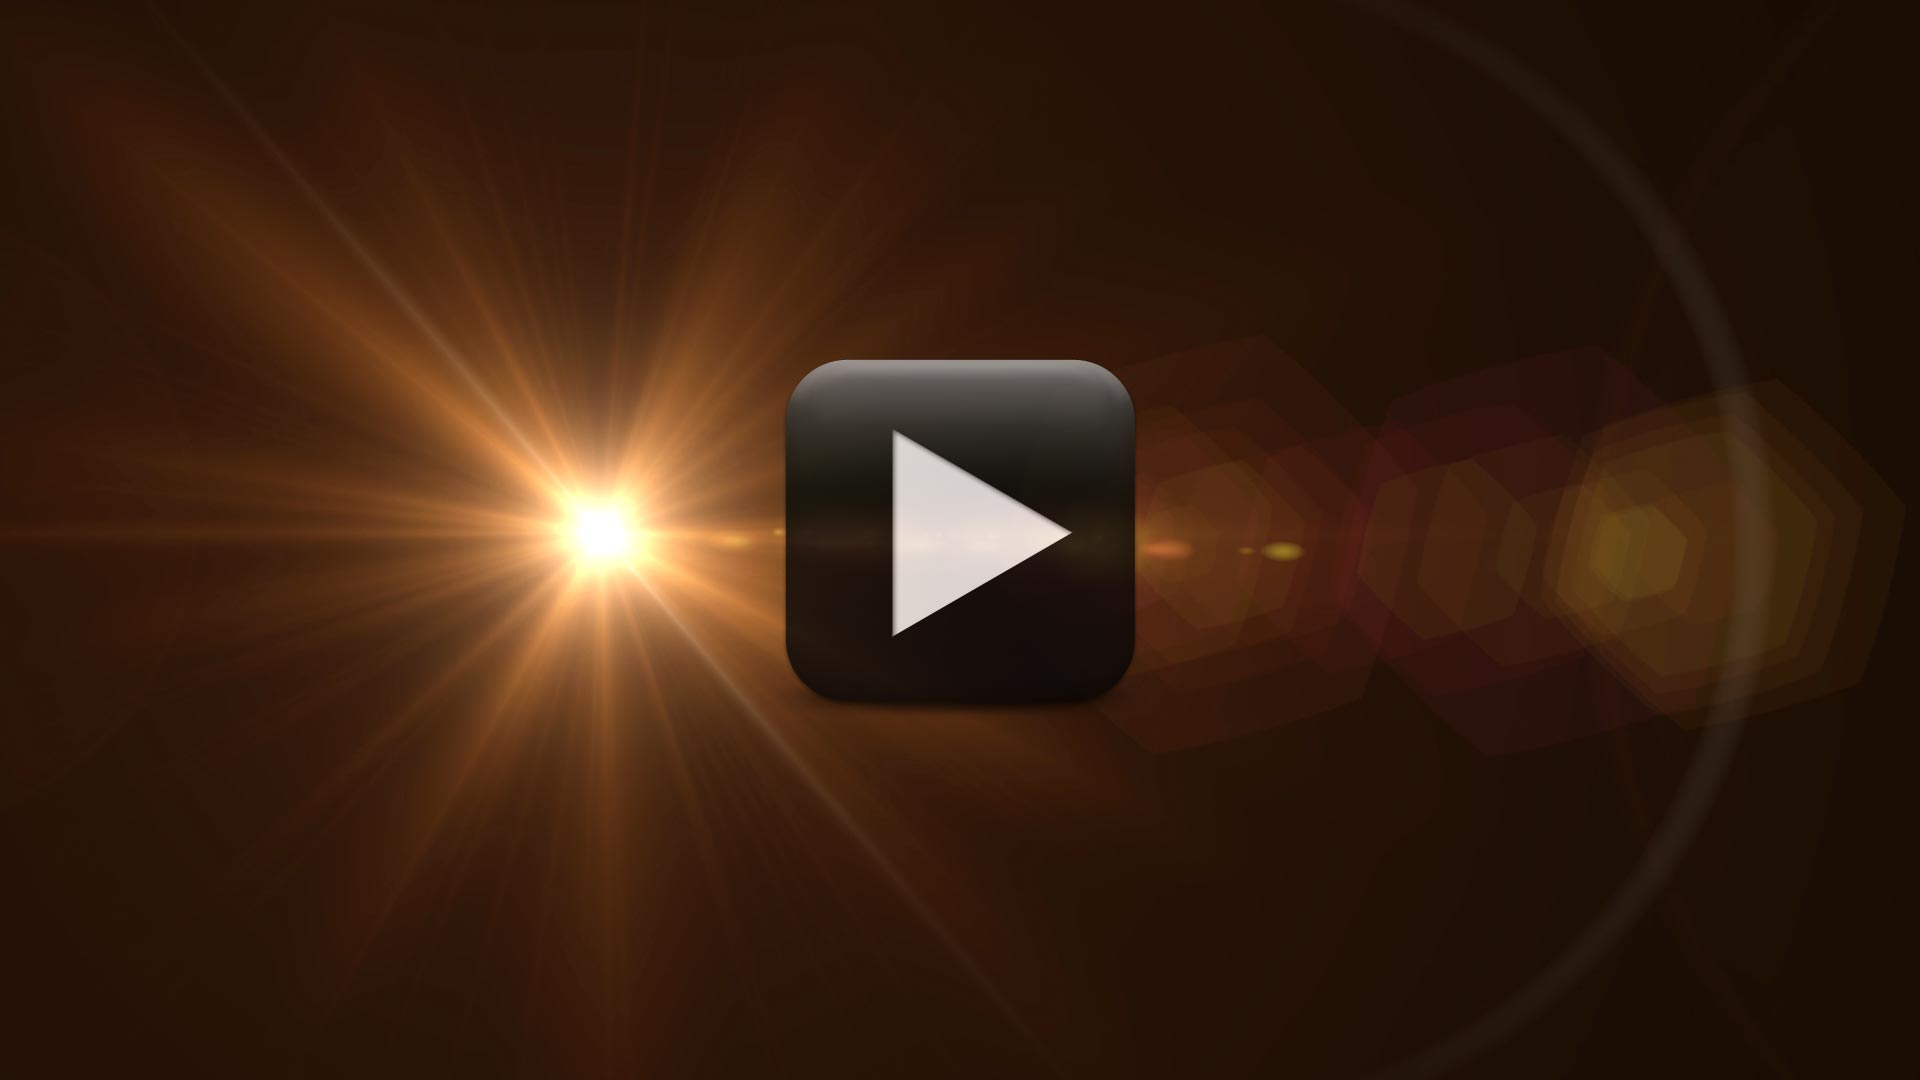 Free Download Optical Flares Background Hd 1080p All Design Creative